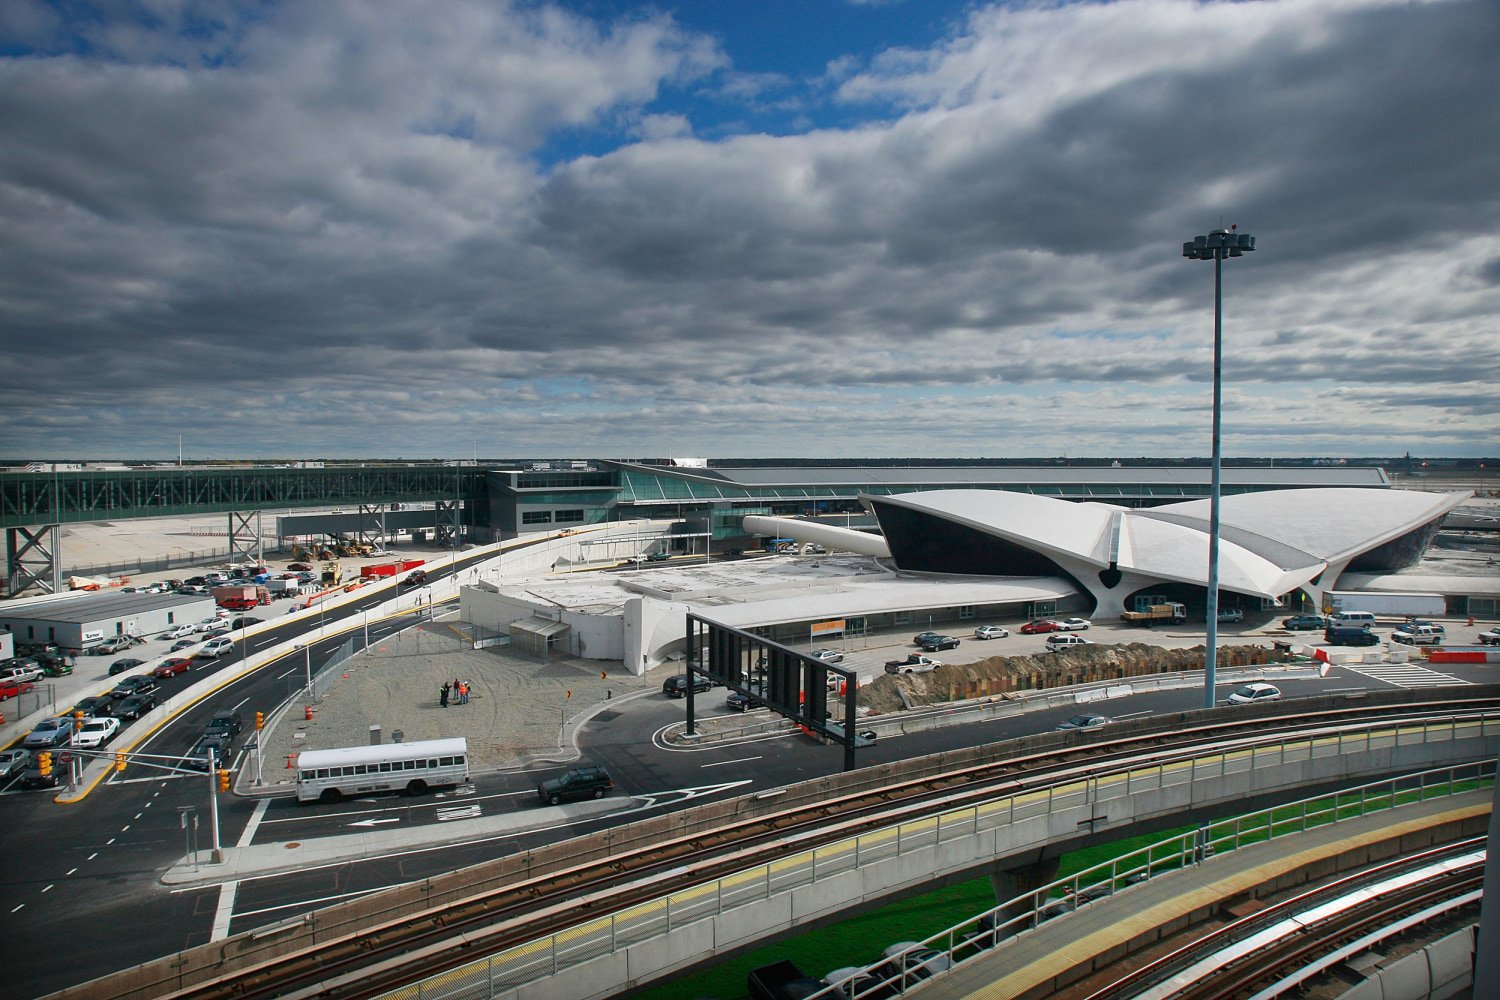 Security Breach Allows Unchecked Passengers on Flights at JFK